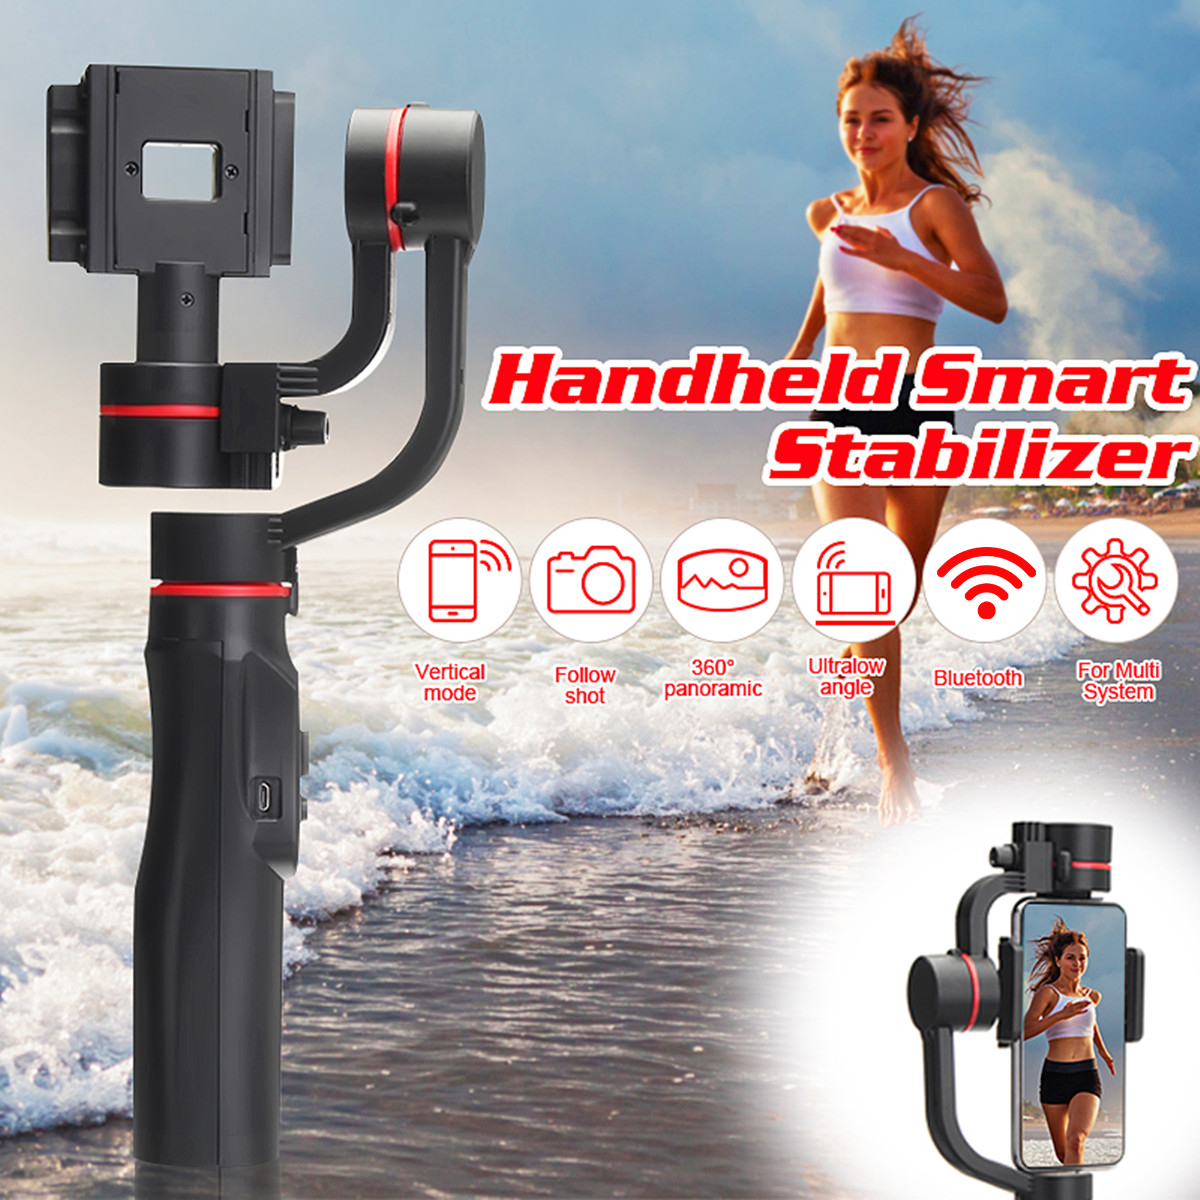 Freya Handheld 3-Axis Gimbal Stabilizer For Smartphone Smooth Q Model For Phone Action Camera-Gopro Tripod Microphone LED wewow sport x1 handheld gimbal stabilizer 1 axis for gopro hreo 3 3 4 smartphone iphone 7 plus yi 4k sjcam aee action camera